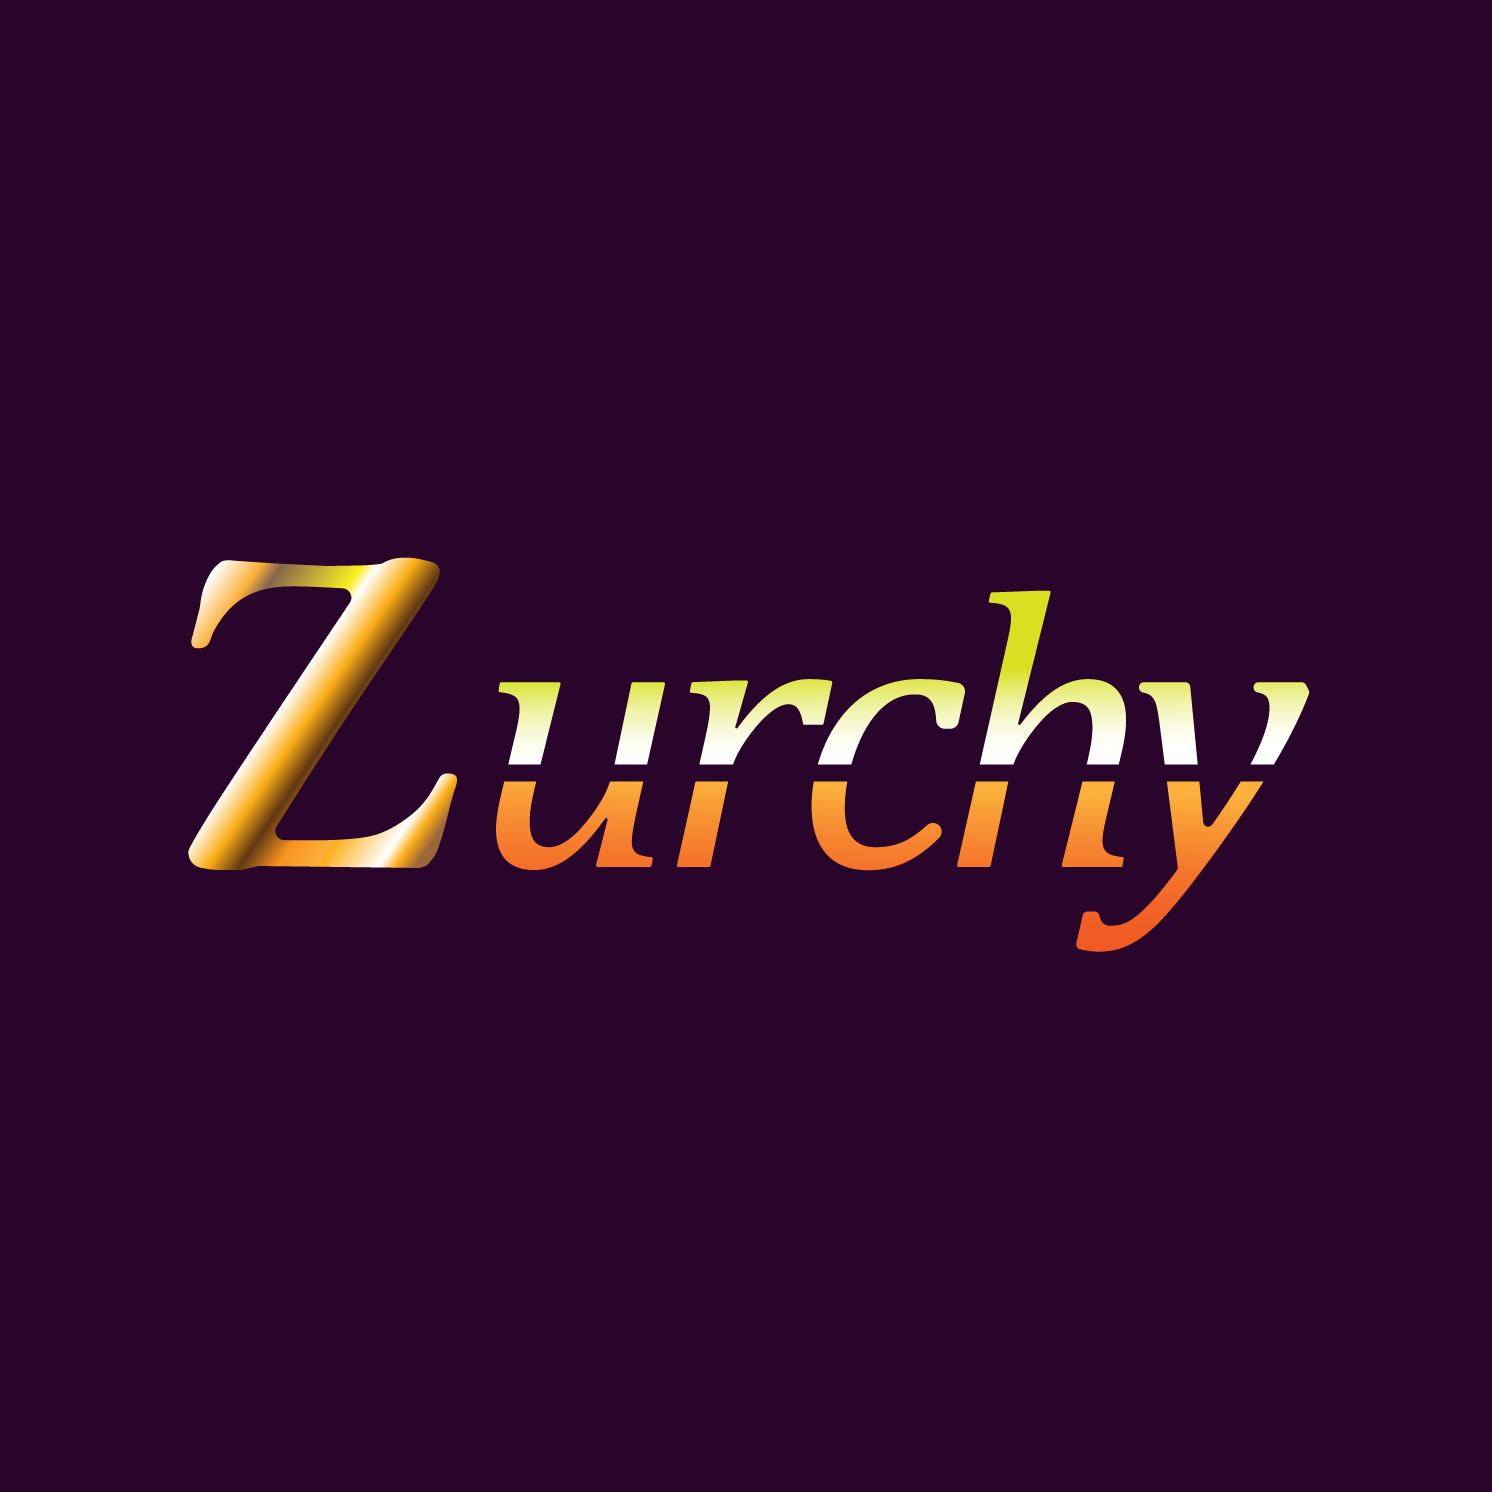 Welcome To Zurchy Brand!